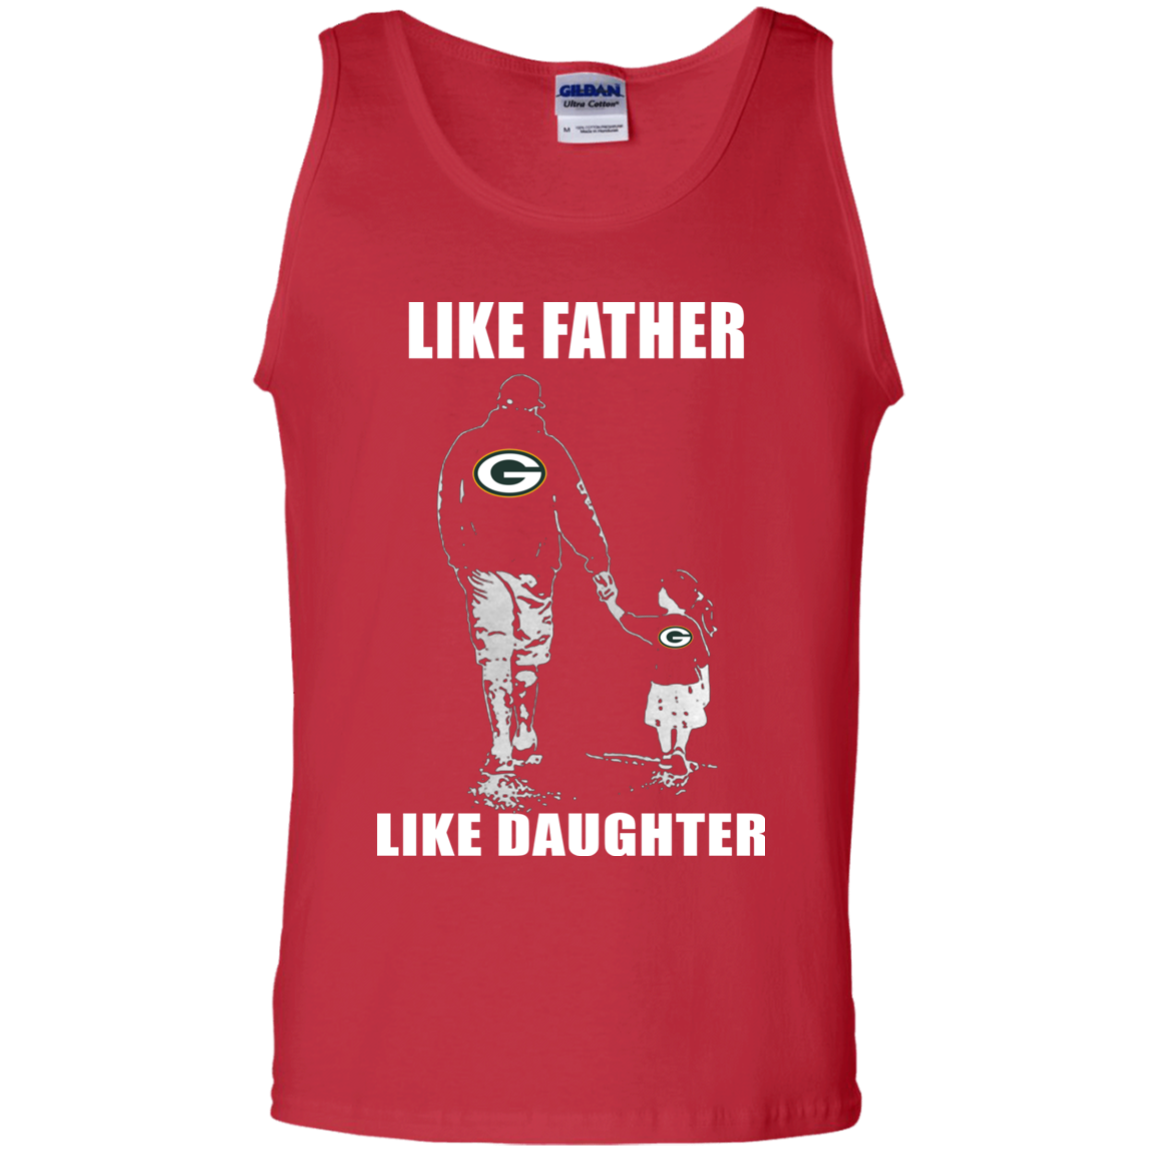 202d68654 ... Like Father Like Daughter – Green Bay Packers T Shirt G220 Gildan 100%  Cotton Tank